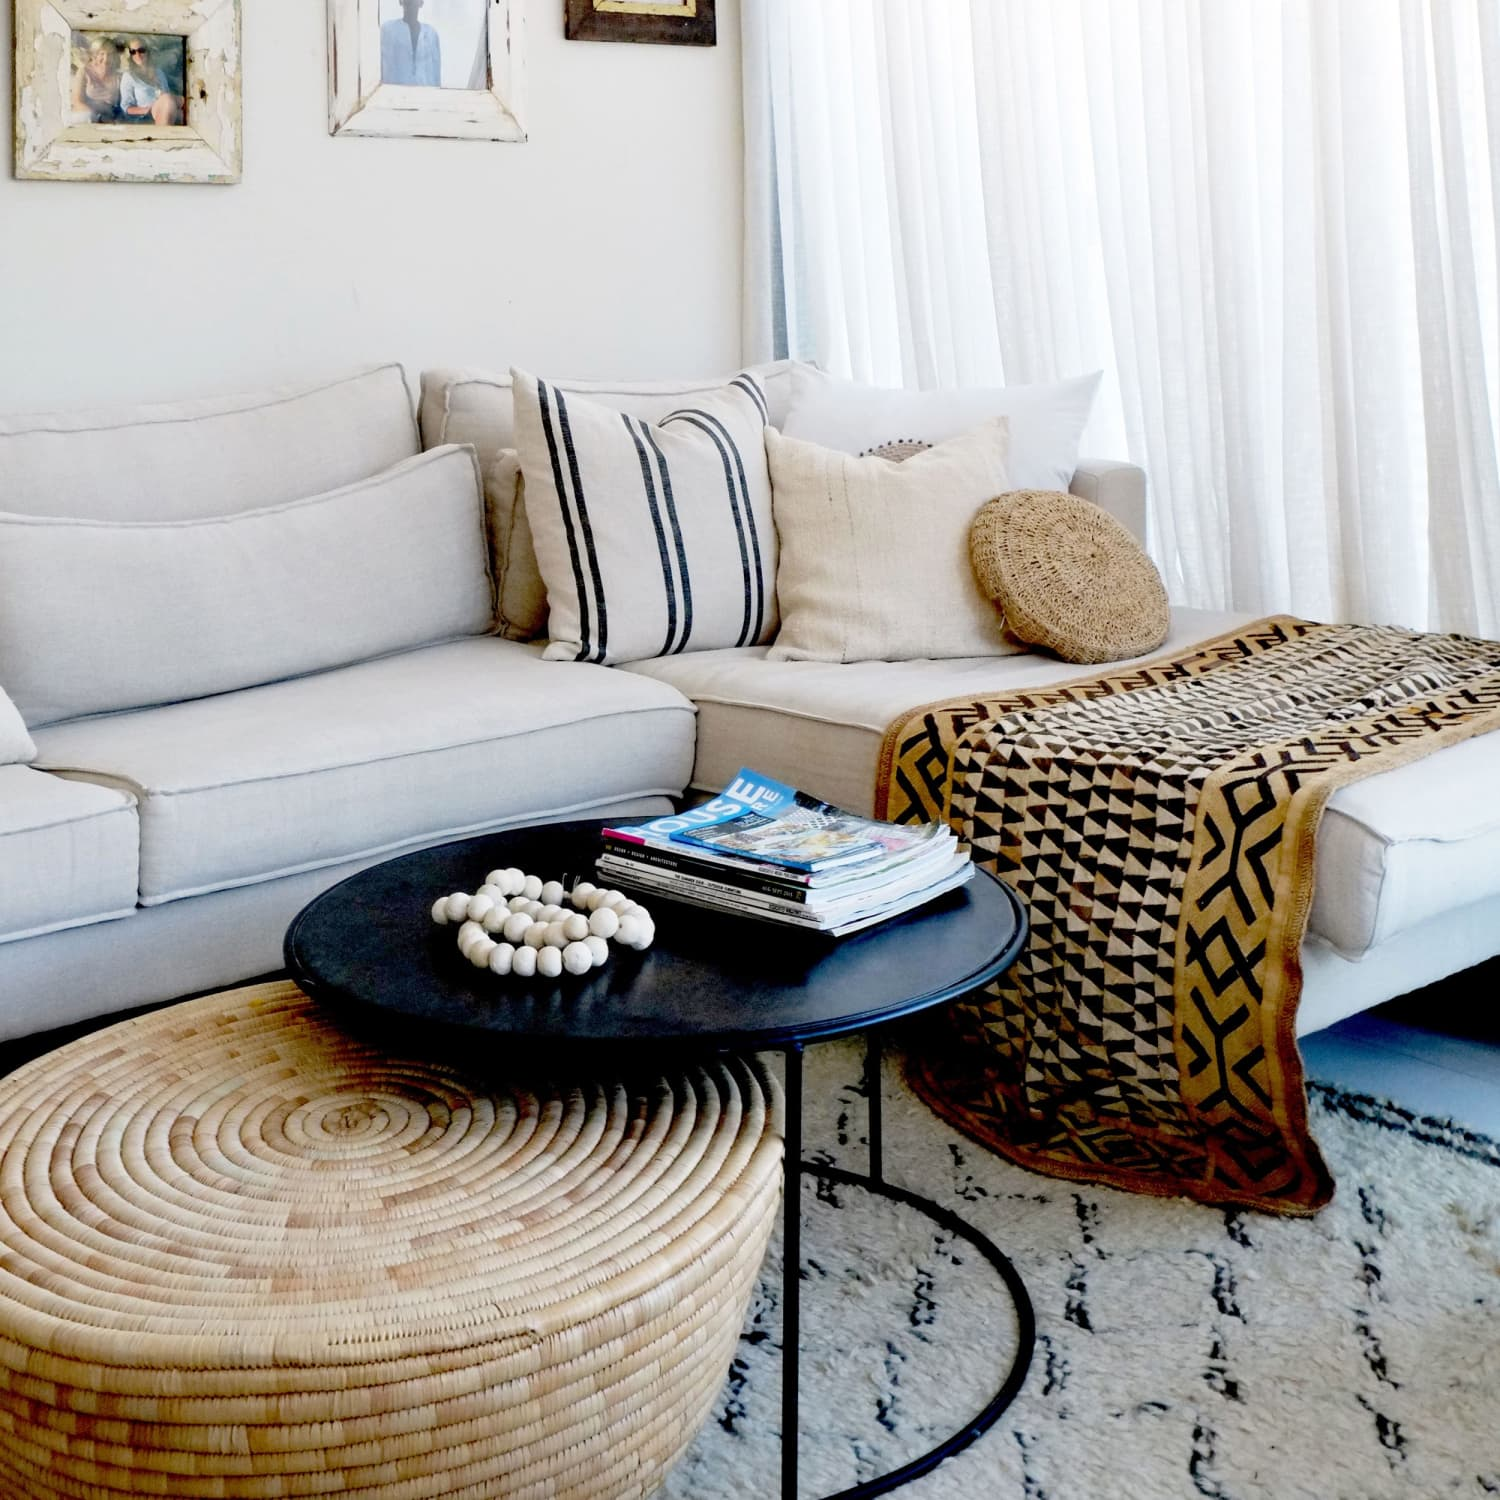 How To Make Couch Cushions Look New With Polyfil Apartment Therapy